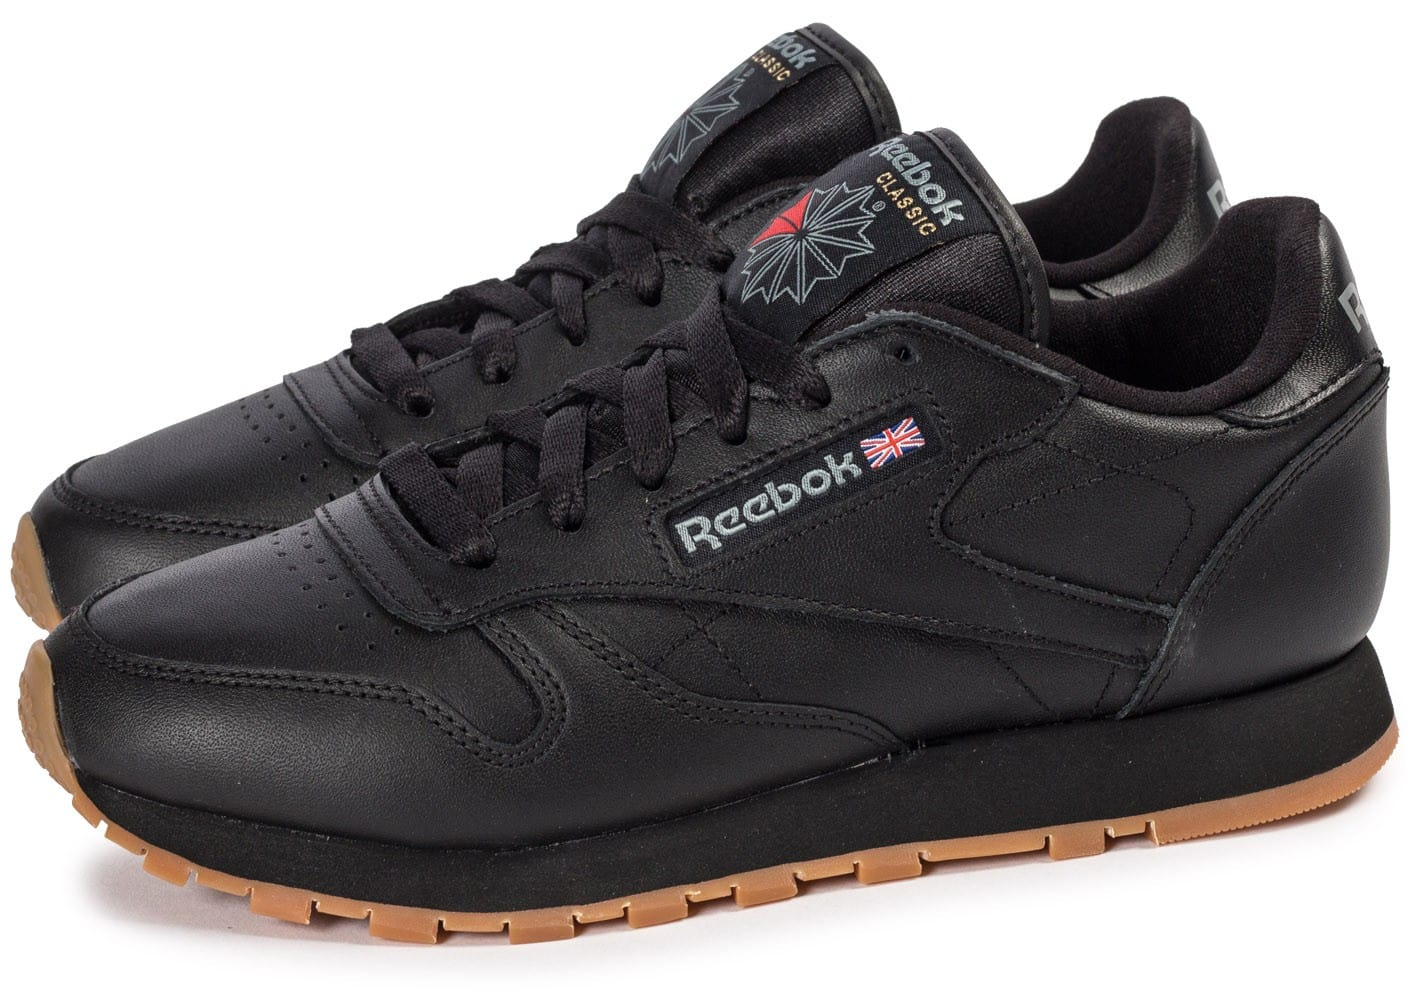 Baskets Gum Chausport Femme Noire Reebok Classic Leather Chaussures XpfqWUwS 9c70f612352b